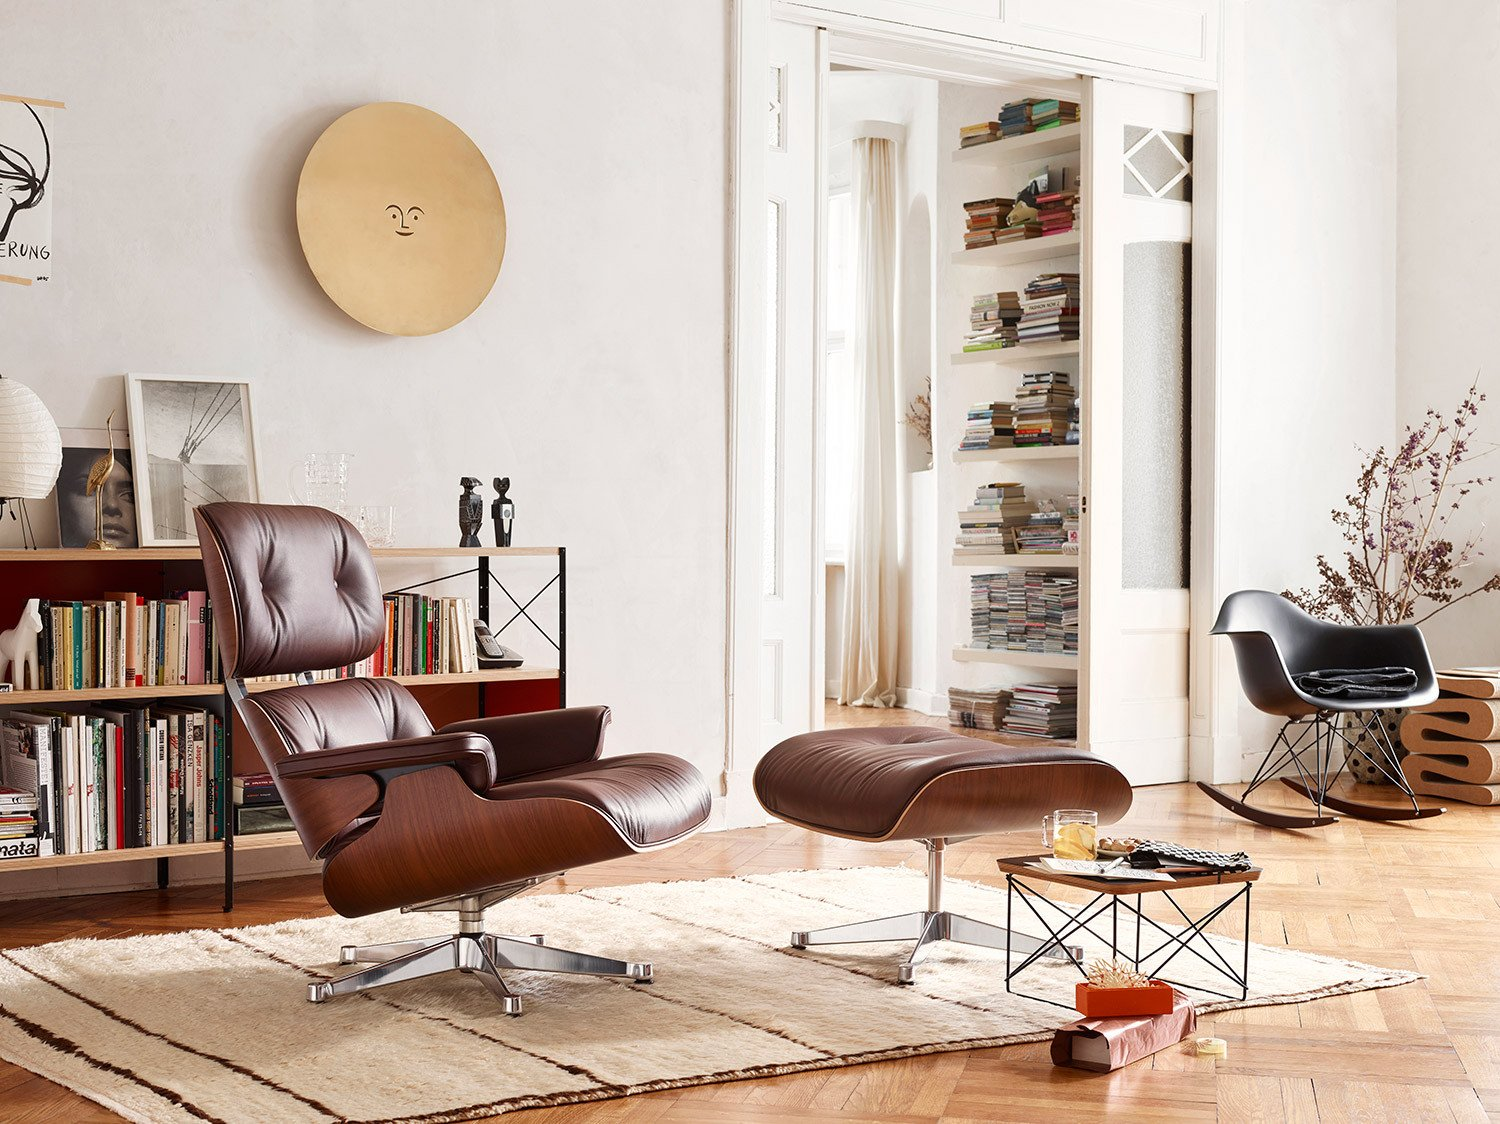 Sensational Why Are The Eames Lounge Chairs So Darn Expensive Machost Co Dining Chair Design Ideas Machostcouk